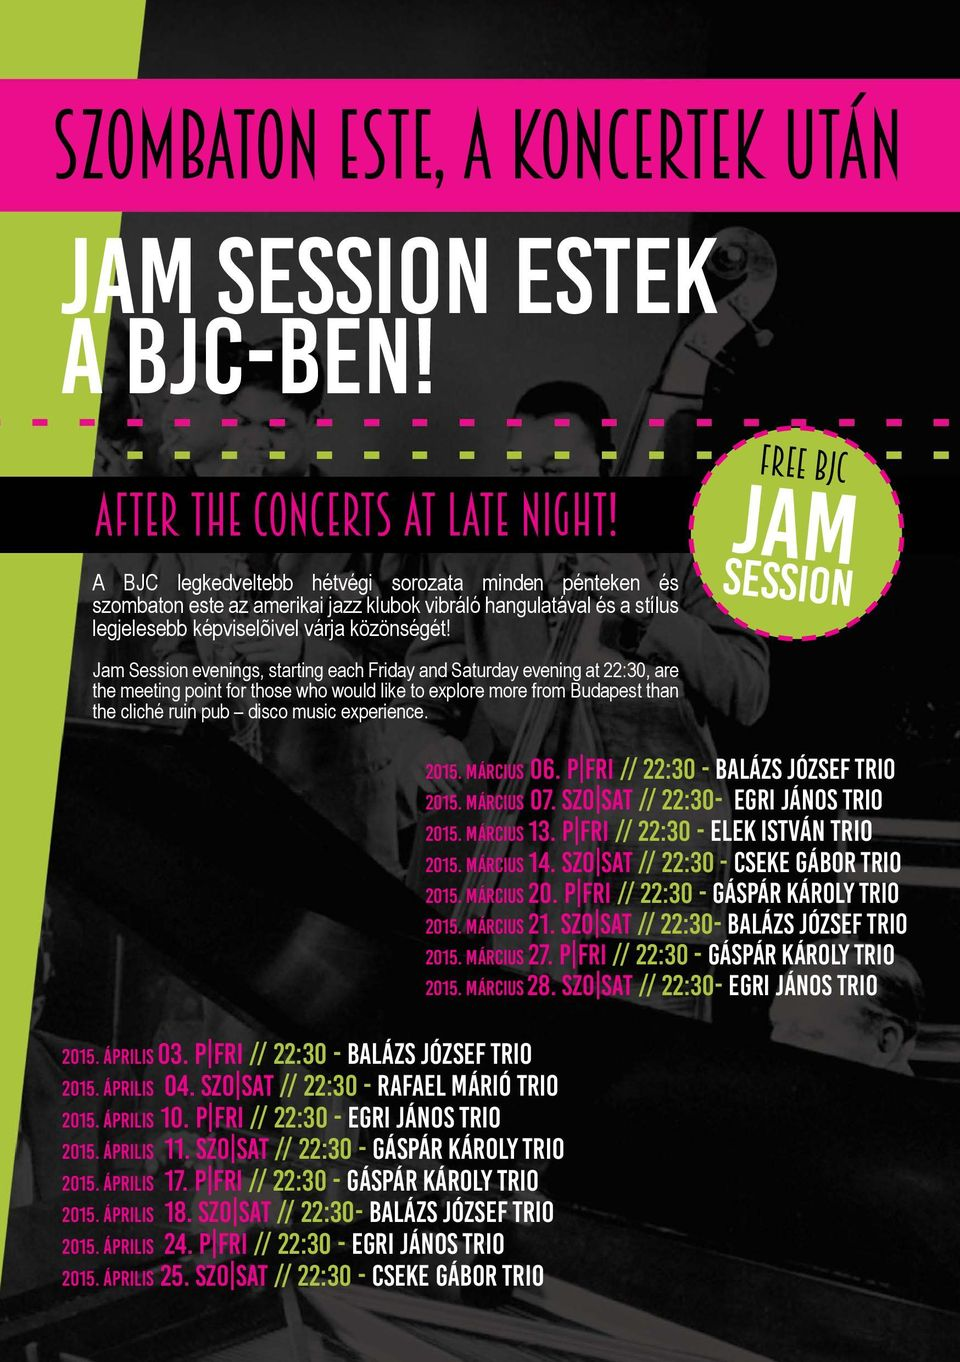 Jam Session evenings, starting each Friday and Saturday evening at, are the meeting point for those who would like to explore more from Budapest than the cliché ruin pub disco music experience.